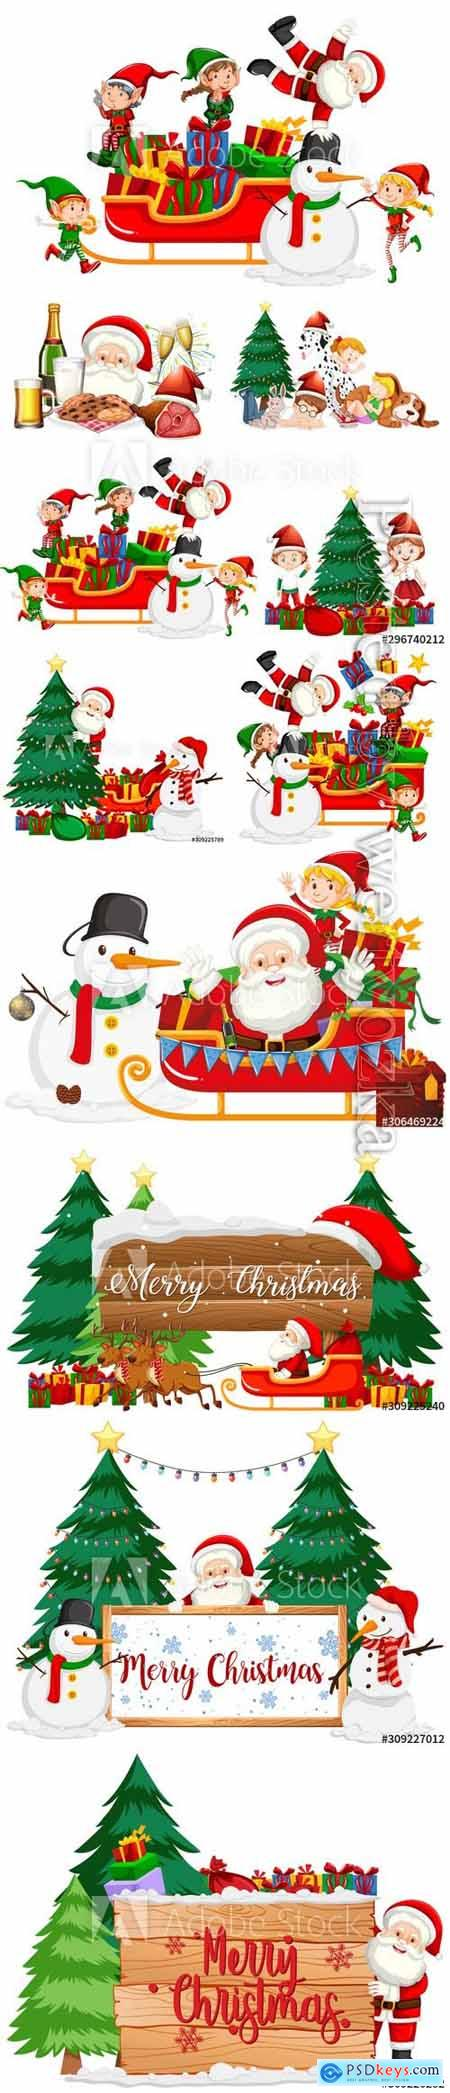 Christmas theme with ornaments on many products